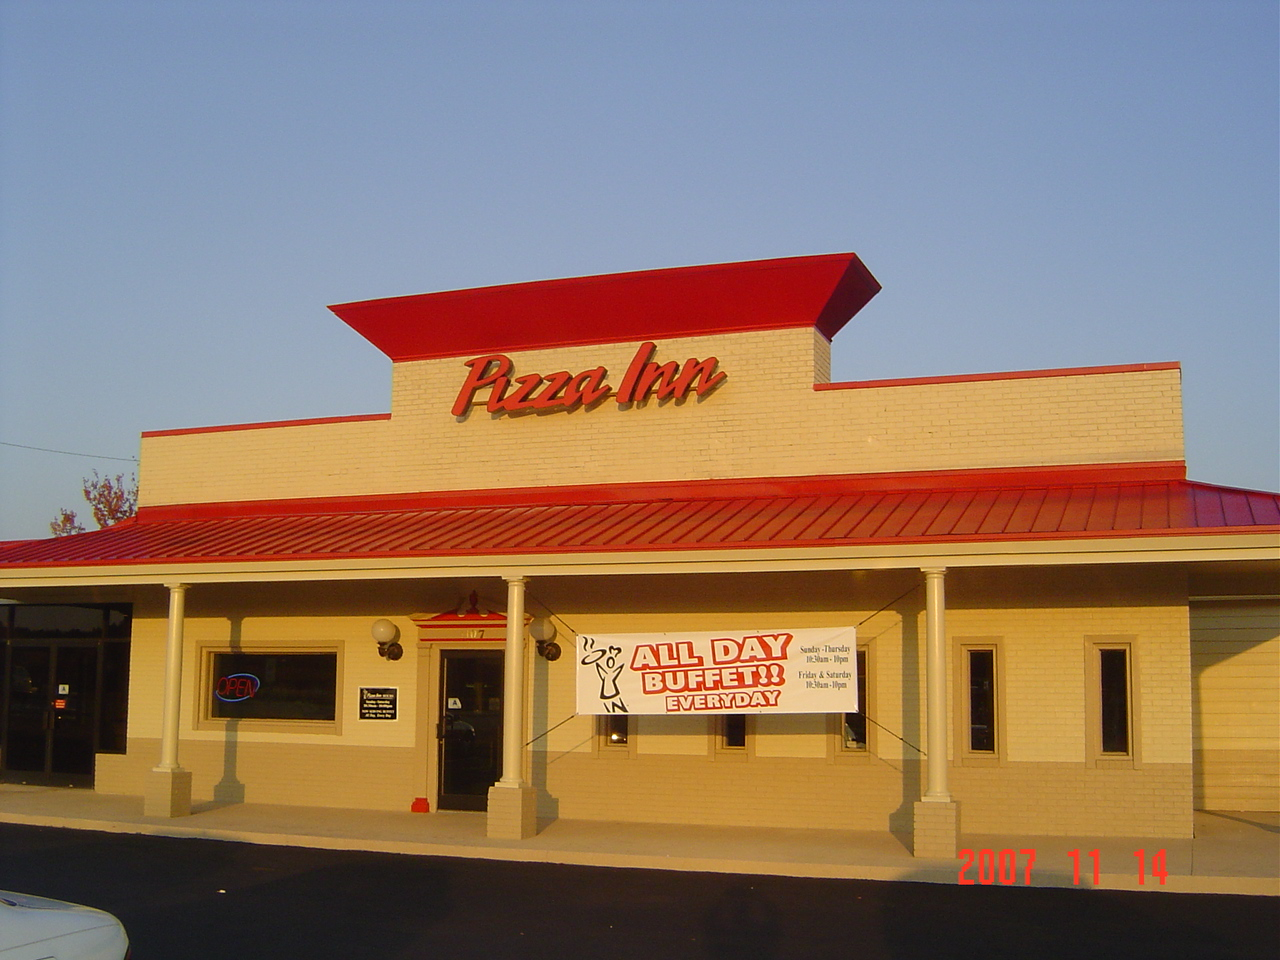 Jun 15,  · Pizza Inn, Lancaster: See 18 unbiased reviews of Pizza Inn, rated 4 of 5 on TripAdvisor and ranked #23 of 61 restaurants in Lancaster.4/4(18).